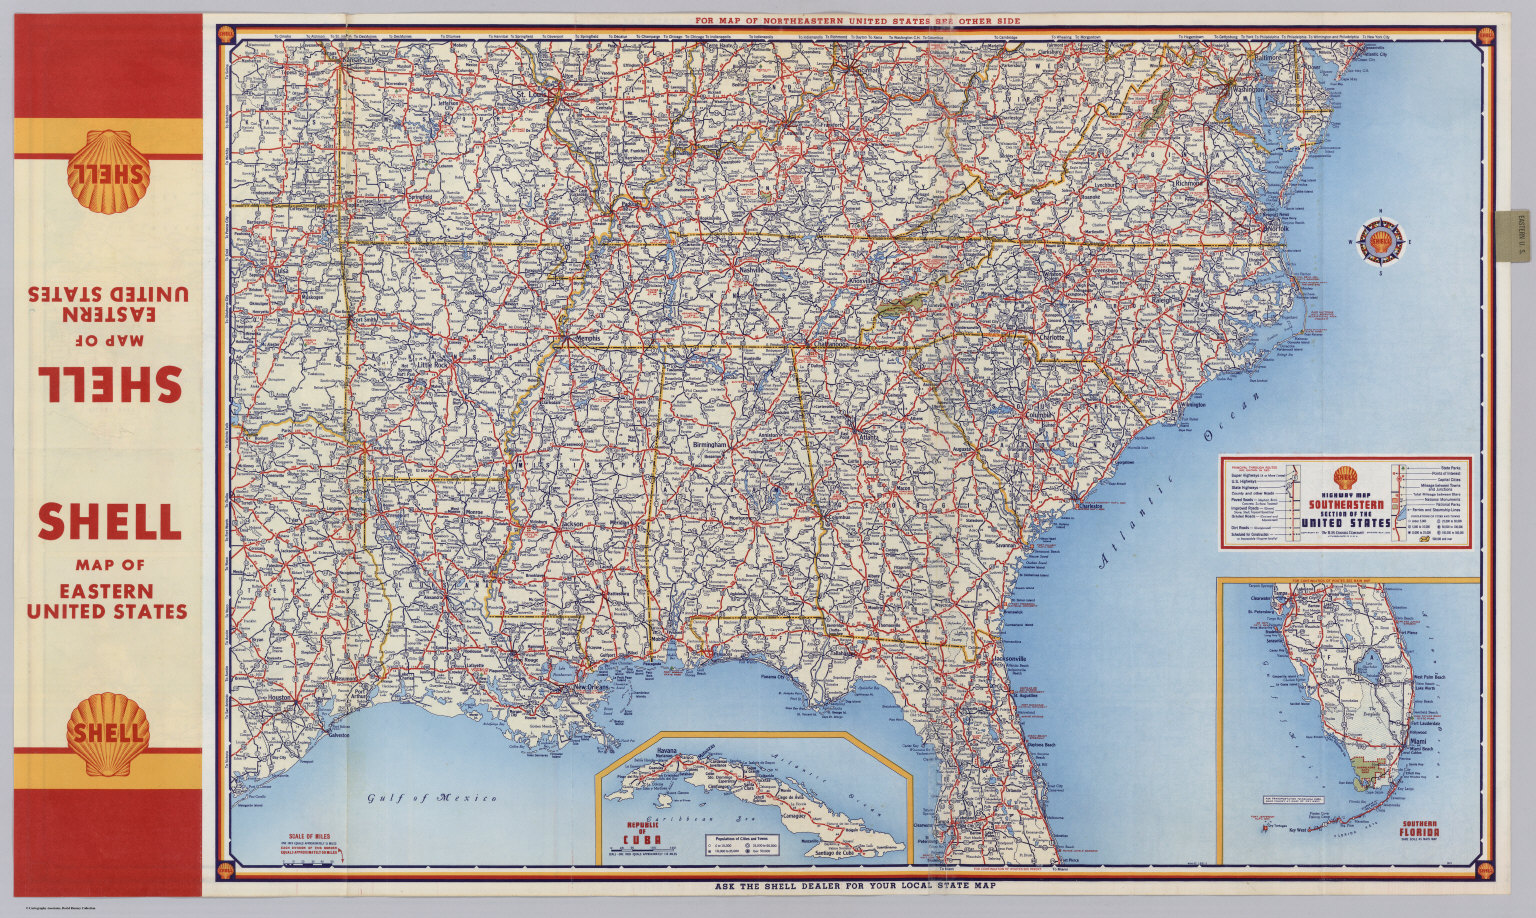 Shell Highway Map Southeastern Section Of The United States - Map of southern us